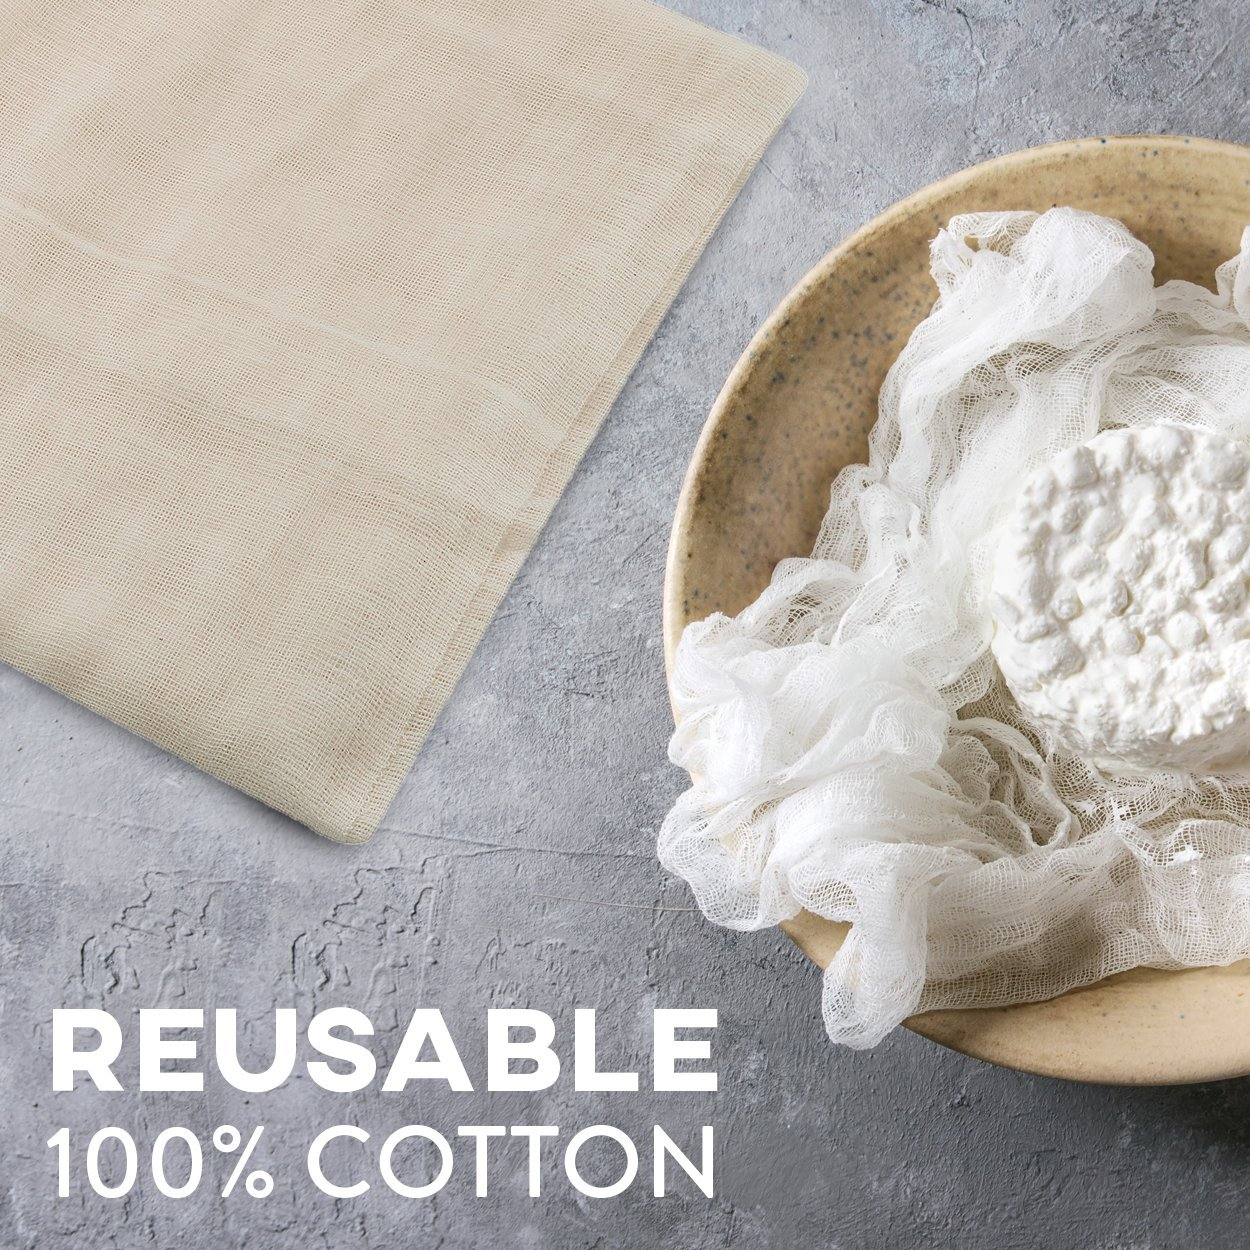 Cheesecloth and Cooking Twine - by Kitchen Gizmo, Grade 50 100% Unbleached Cotton (5 Yards/45 Sq. Feet) Cheese Cloth for Straining with 220 Ft Butchers Twine by Kitchen Gizmo (Image #5)